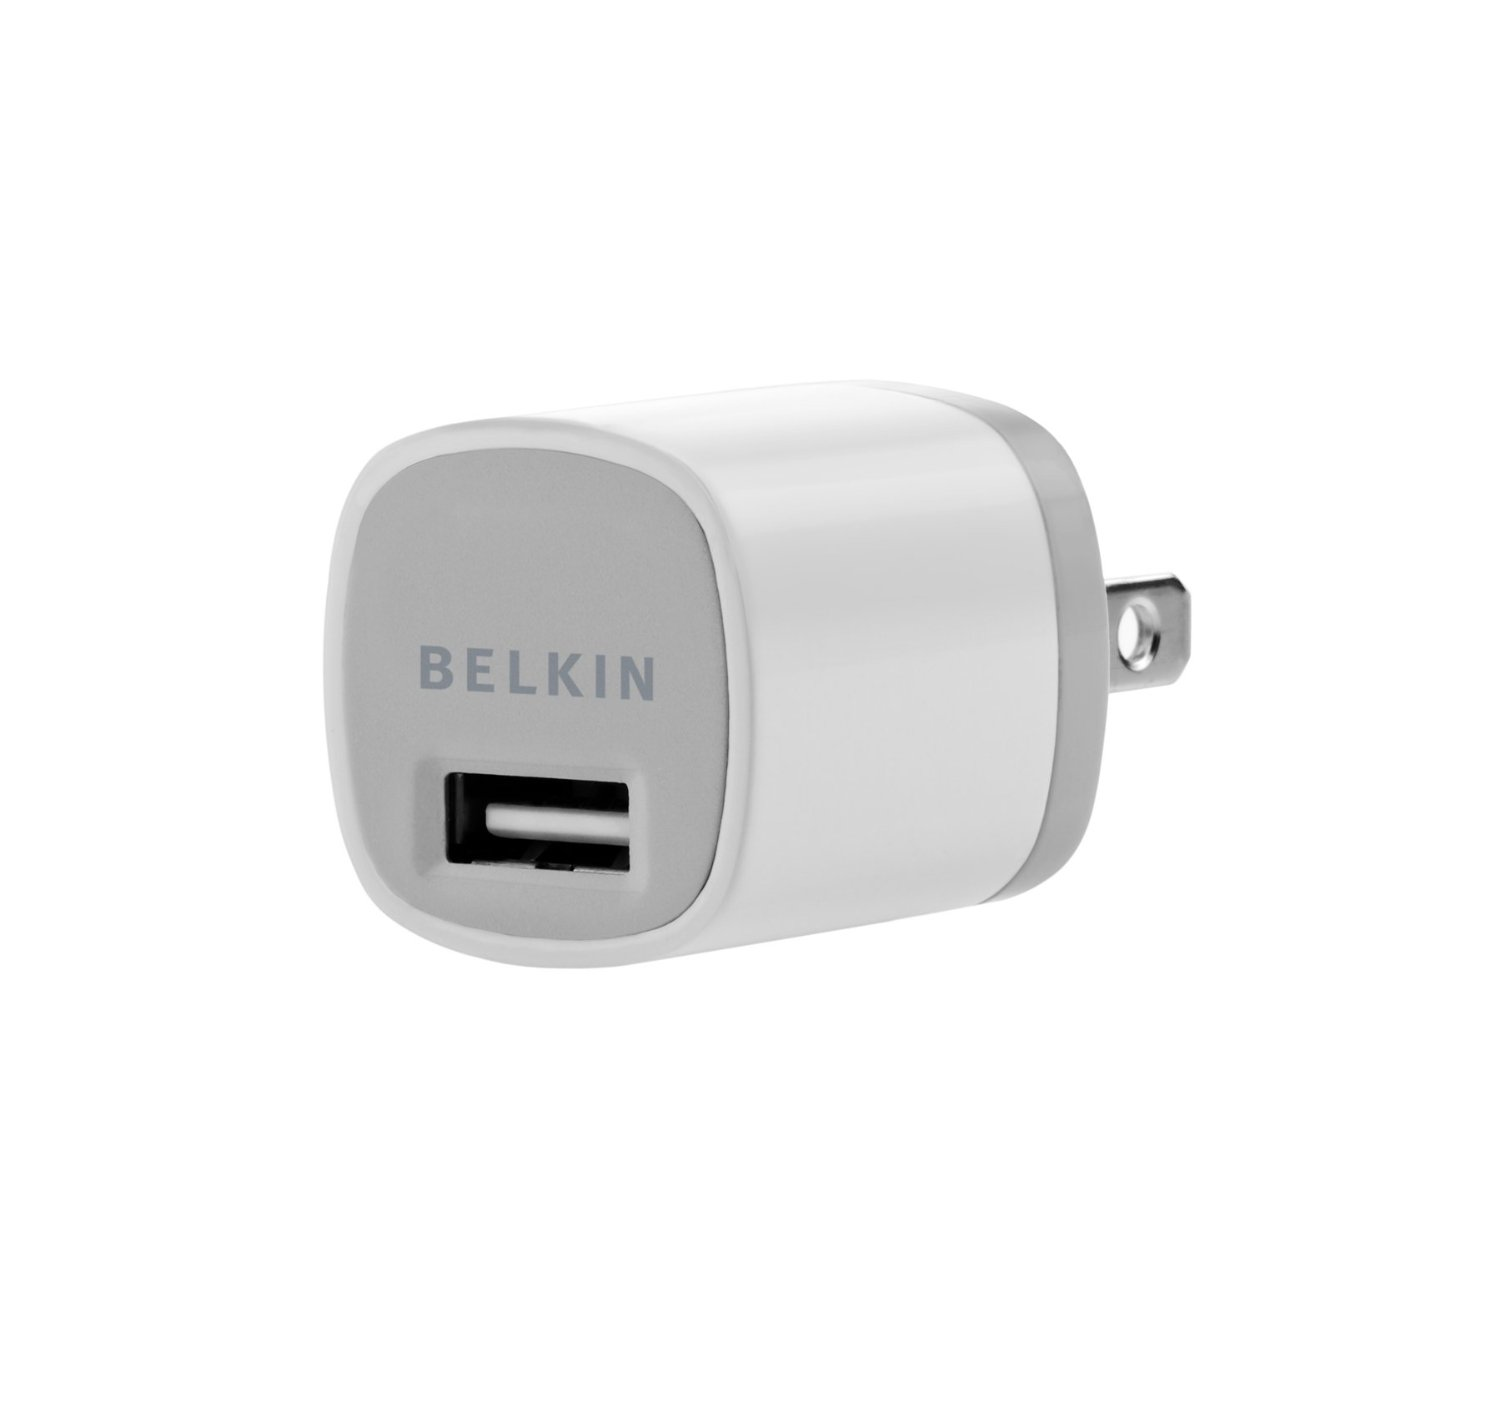 Belkin Micro (1.1 Amp) USB Wall Charger with 4 ft Sync / Charge Cable for Apple iPhone 4S (30 Pin, White)